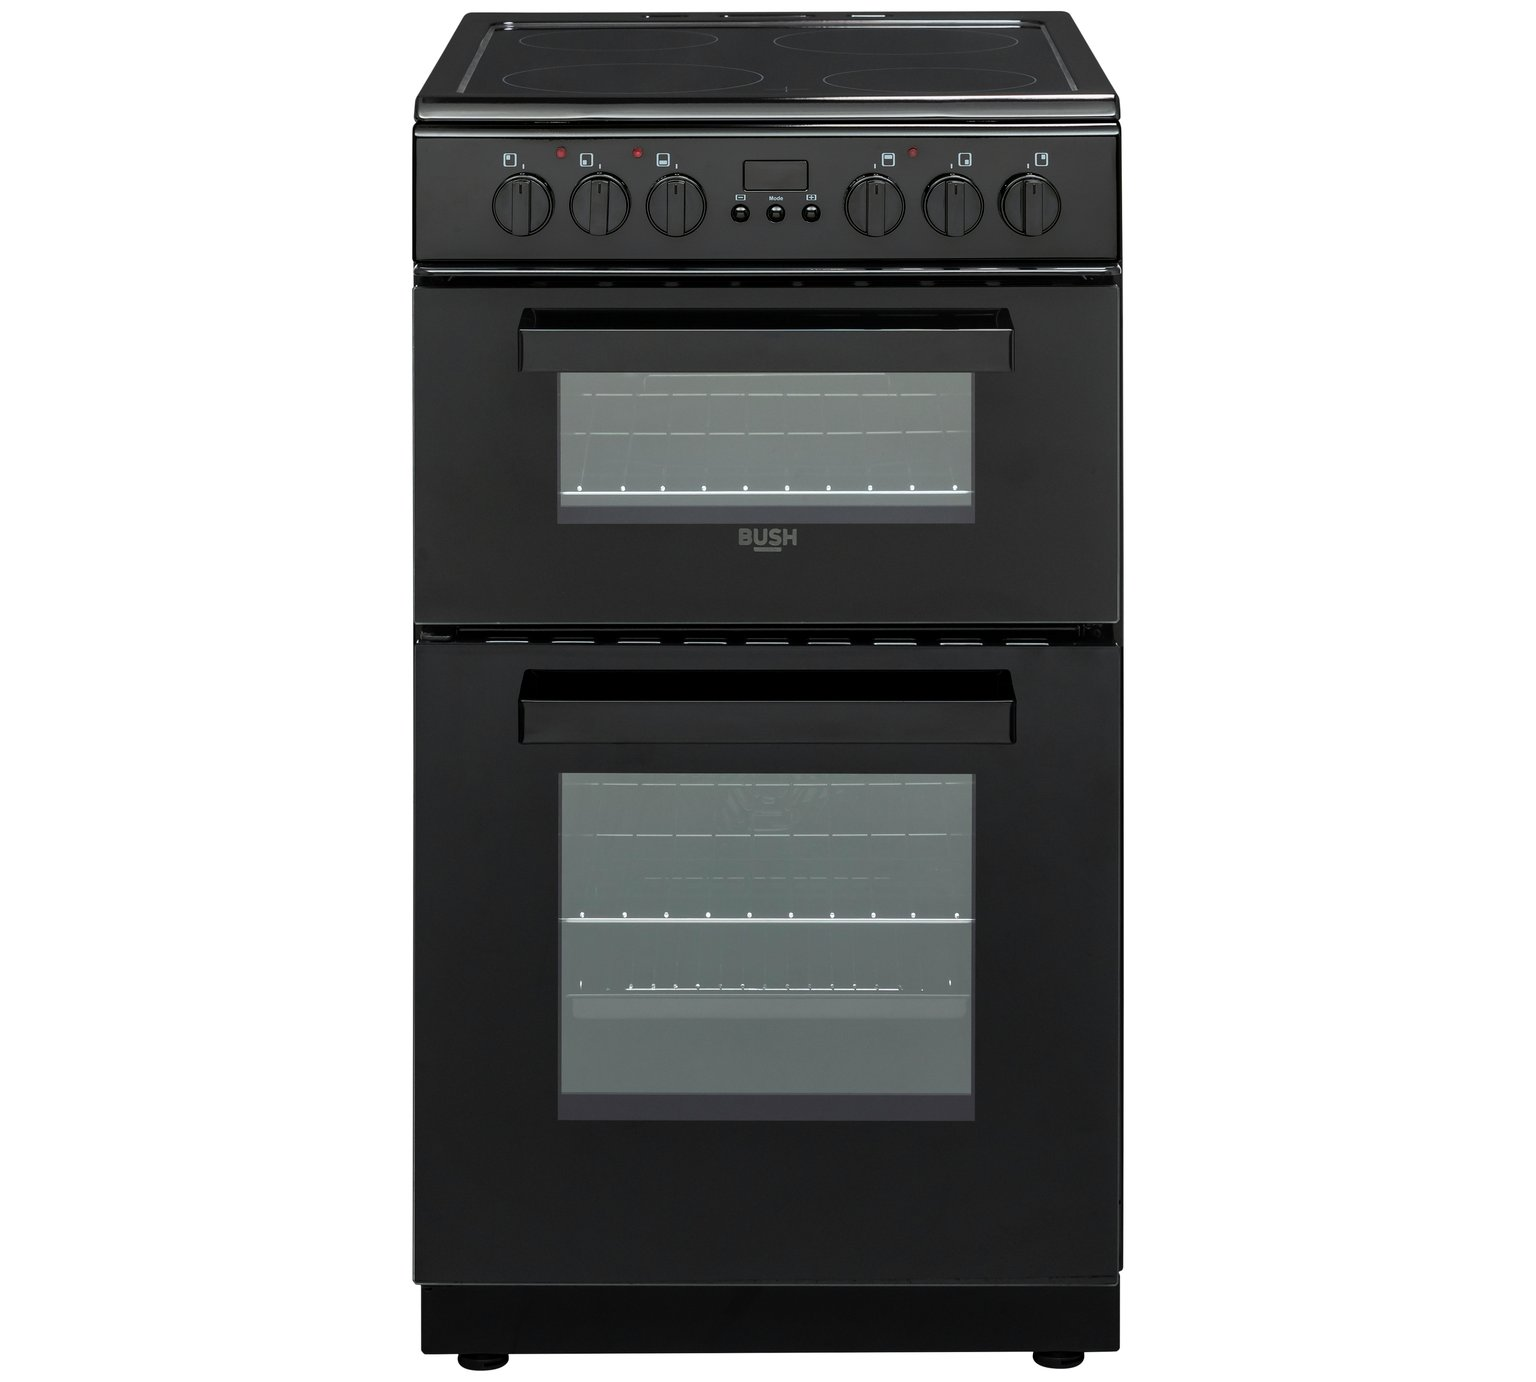 Bush DHBEDC50B Double Electric Cooker - Black